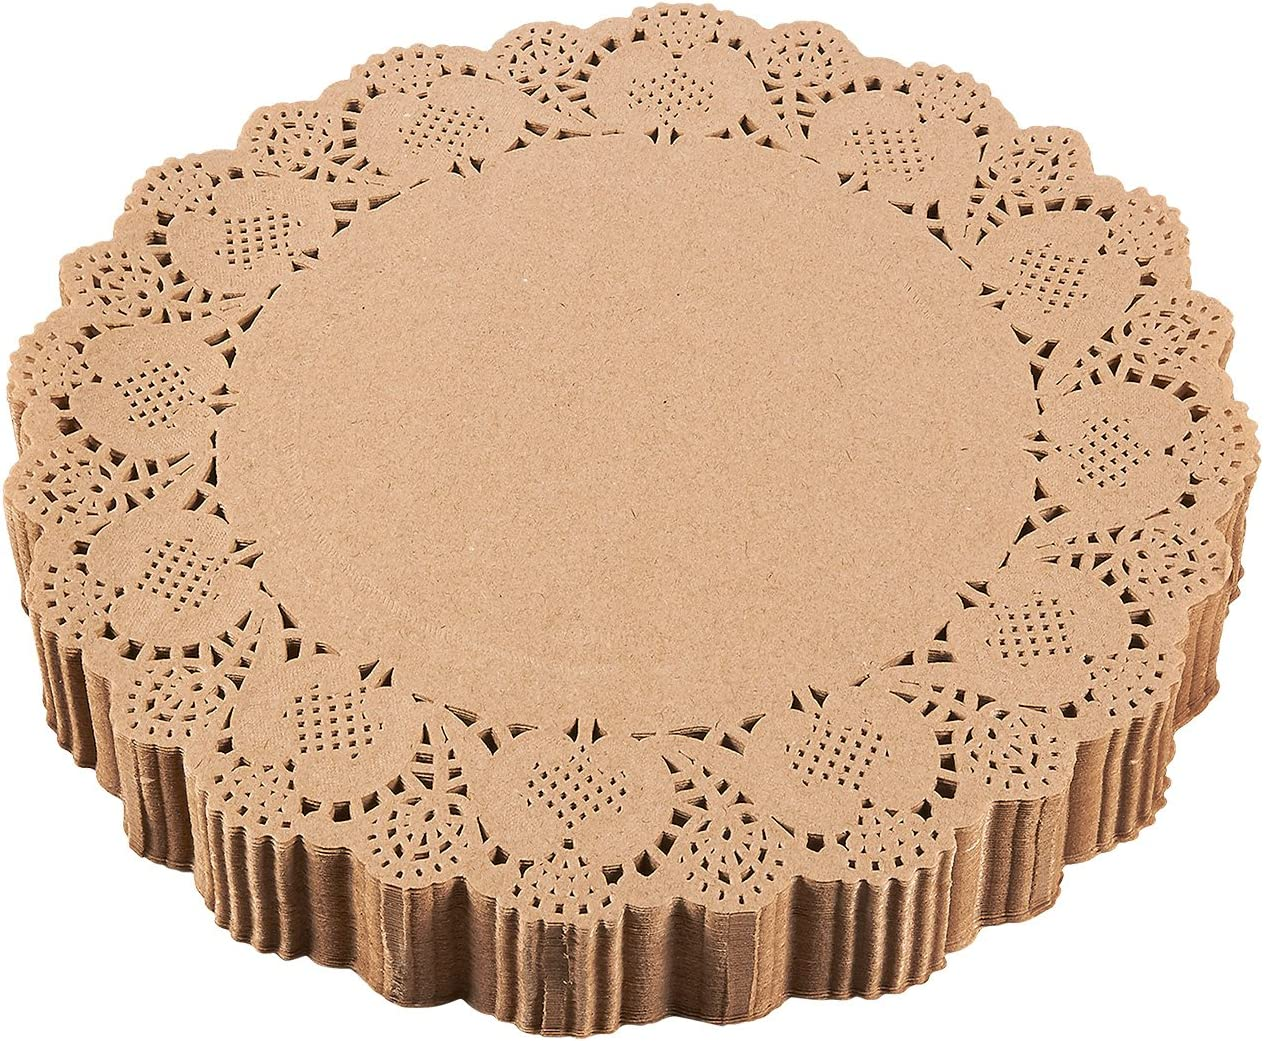 Paper Doilies – 250-Pack Round Lace Placemats for Cakes, Desserts, Baked Treat Display, Ideal for Weddings, Formal Event Decoration, Tableware Decor, Brown - 12 Inches in Diameter